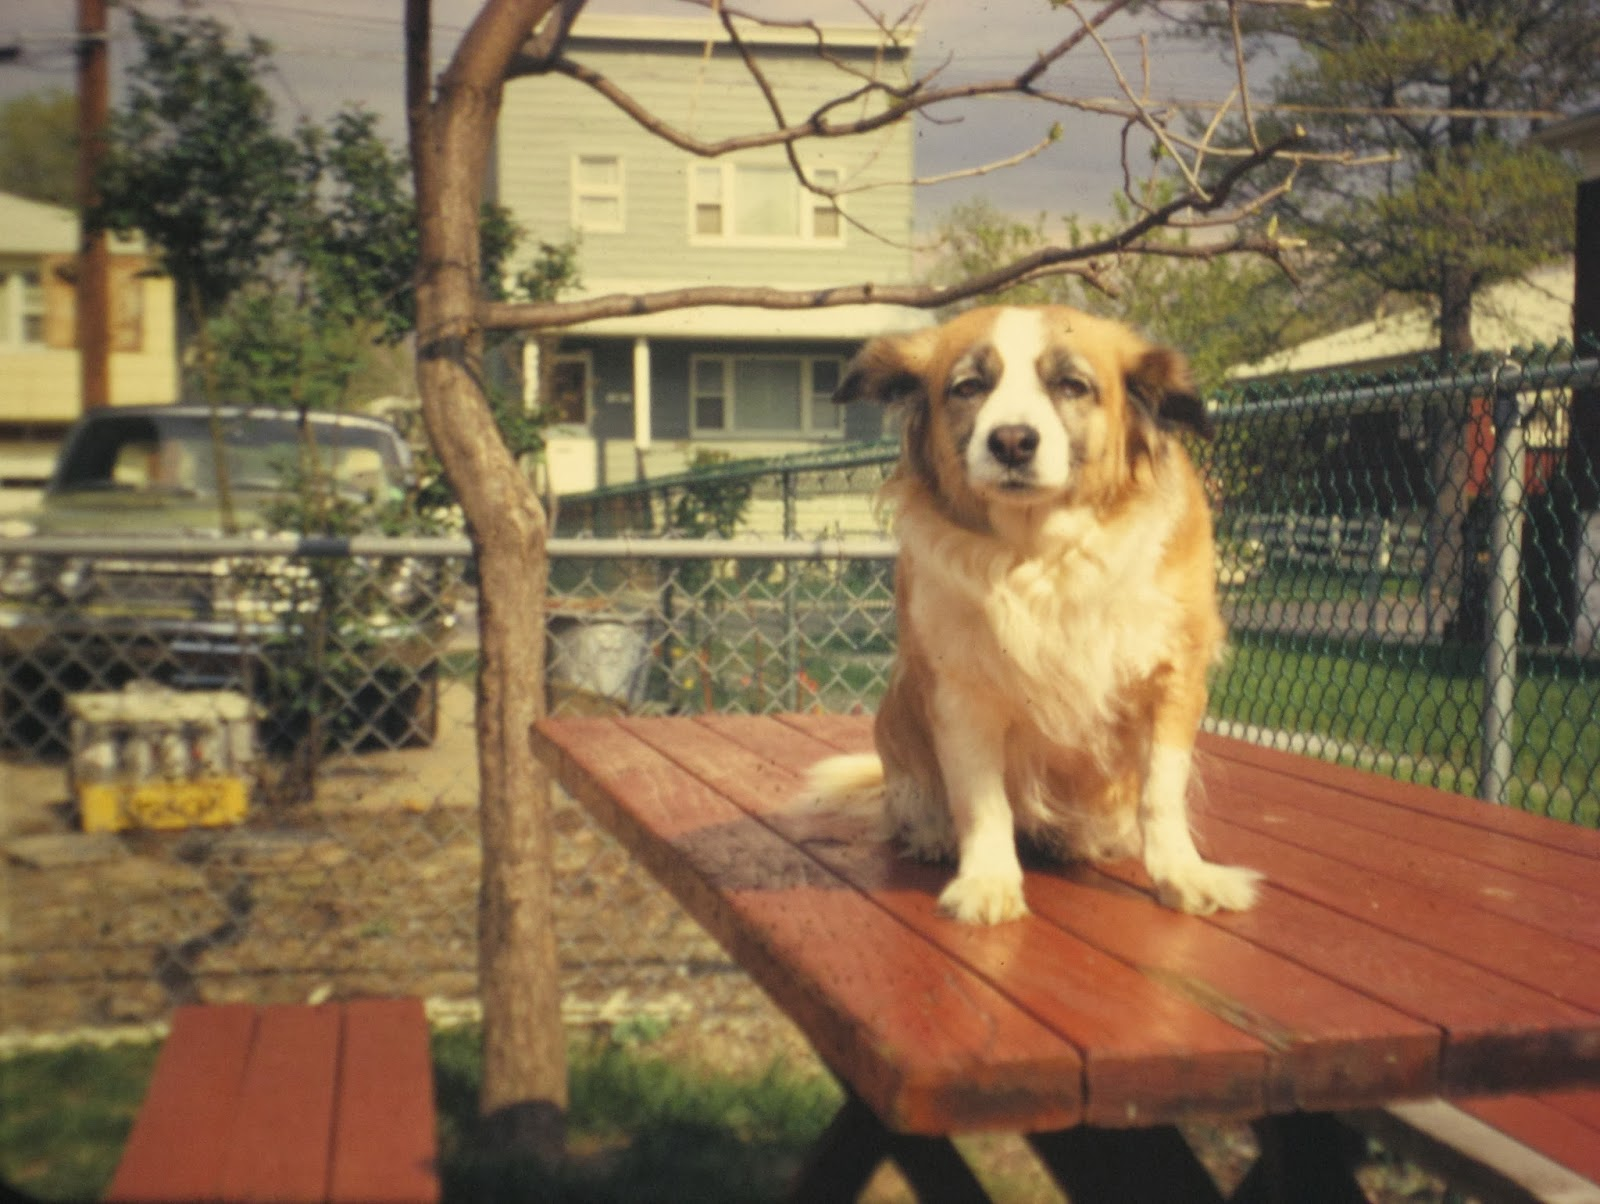 The picnic table we used with our dog Trixie standing on it July 1972